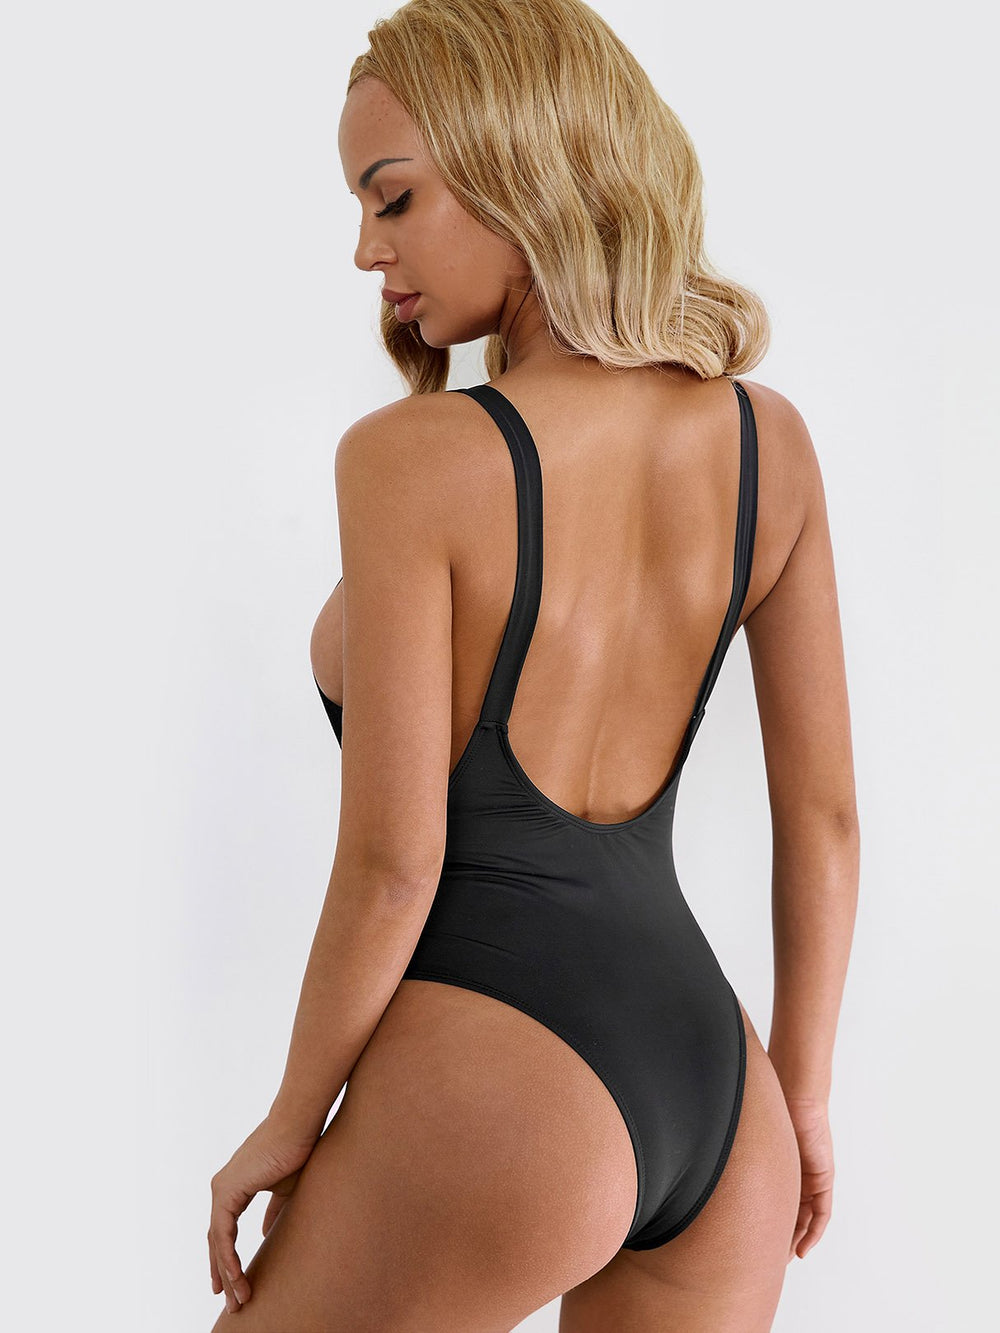 Bikinis With Cool Backs